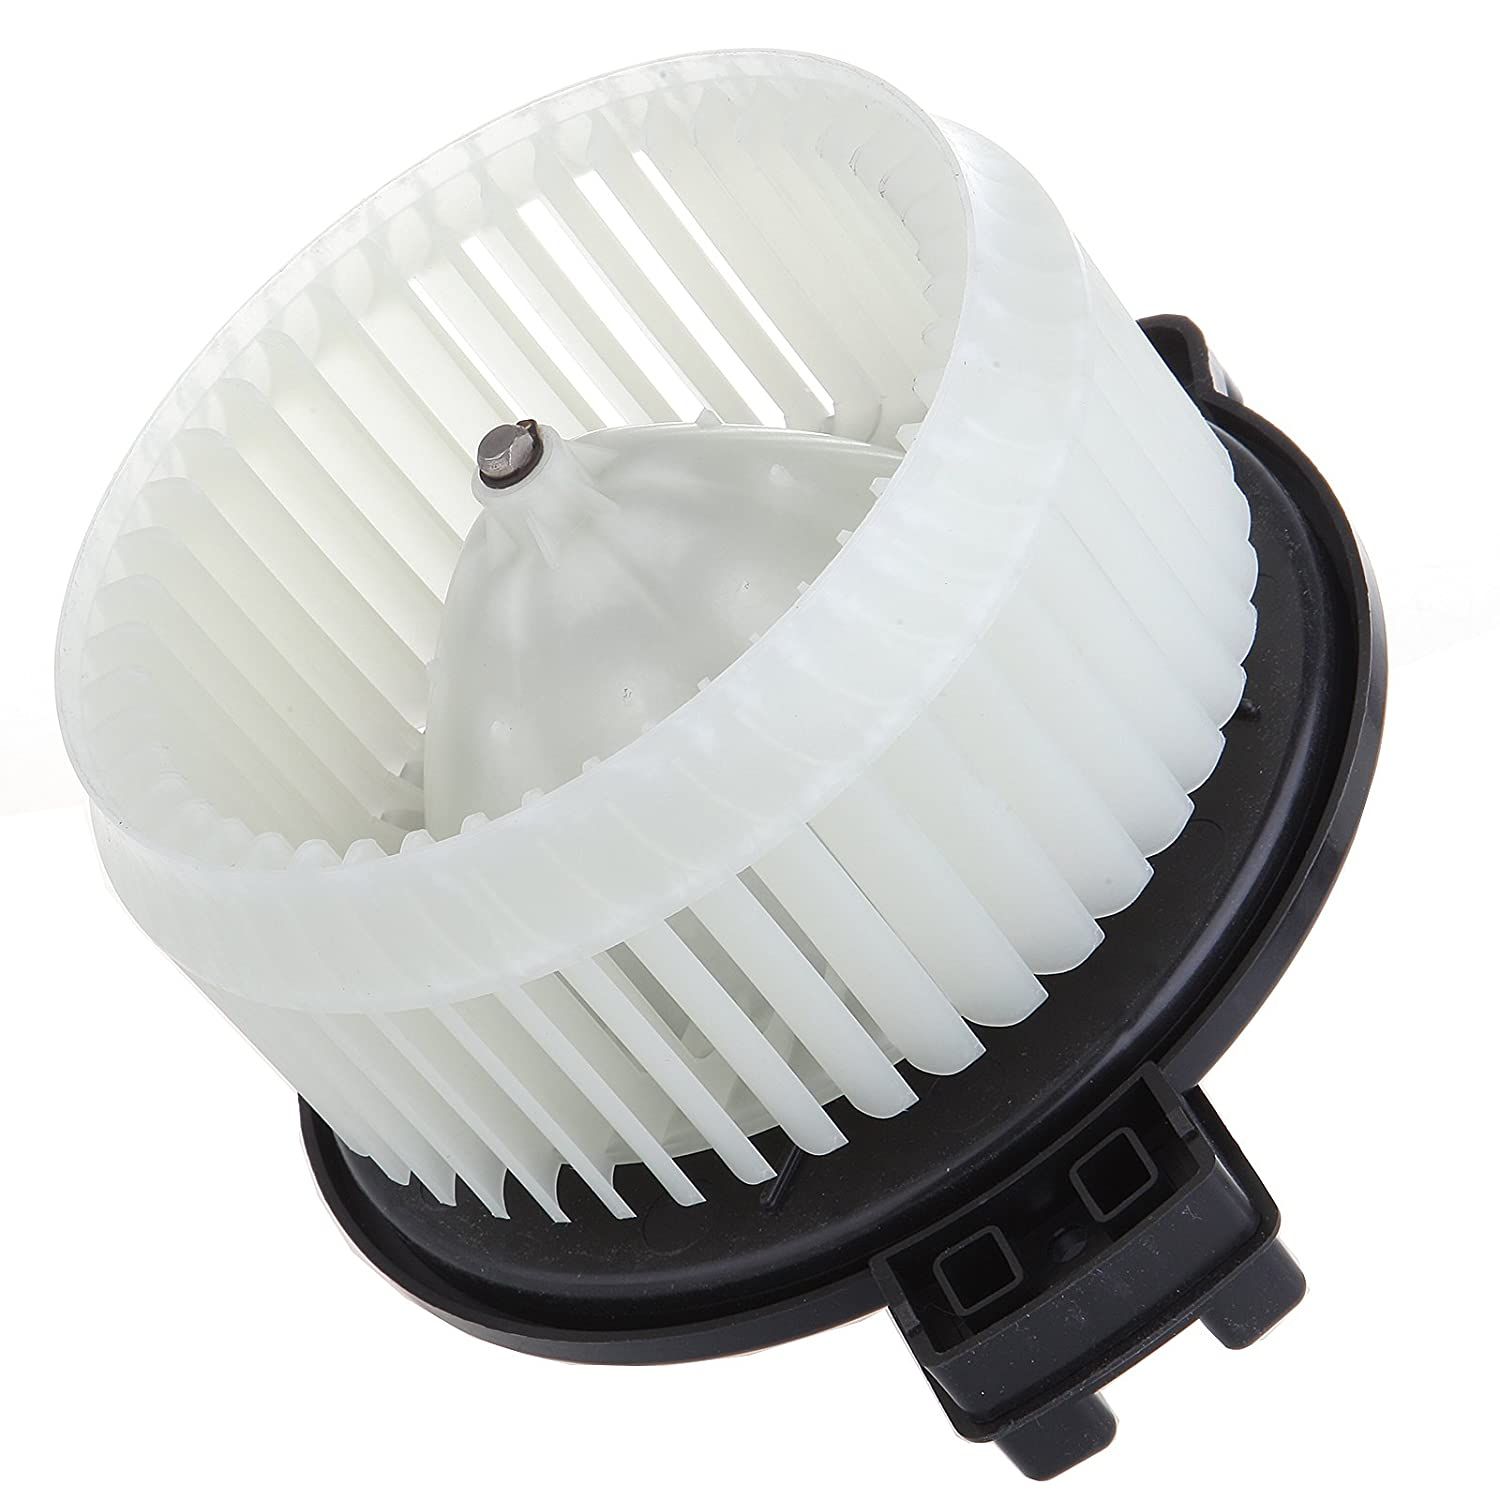 HVAC Plastic Heater Blower Motor ABS w/Fan Cage ECCPP Replacement fit for 2009-2014 Honda FIT 058397-5211-1611303